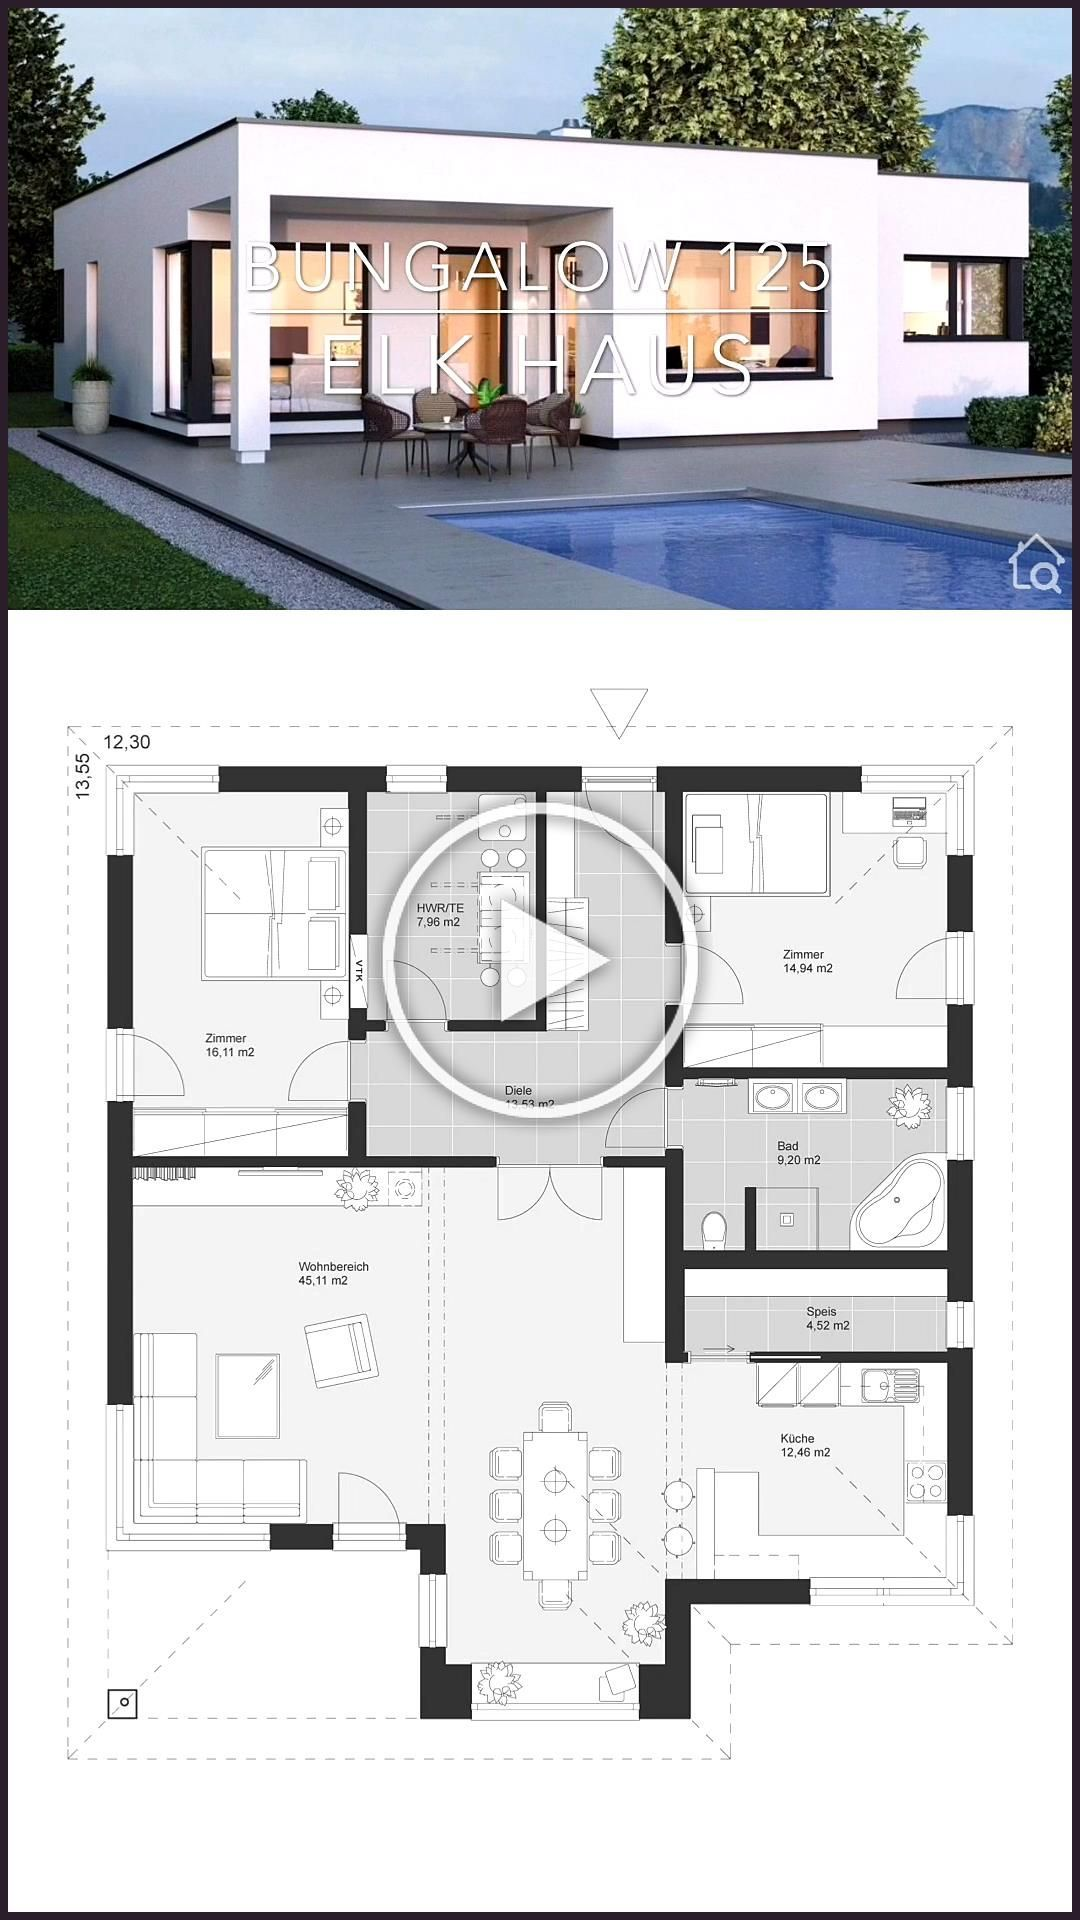 Bungalow House Plans One Story Modern Architecture Design 038 Dream Home Ideas W Bungalow House Plans Dream House Exterior Modern Architecture Design